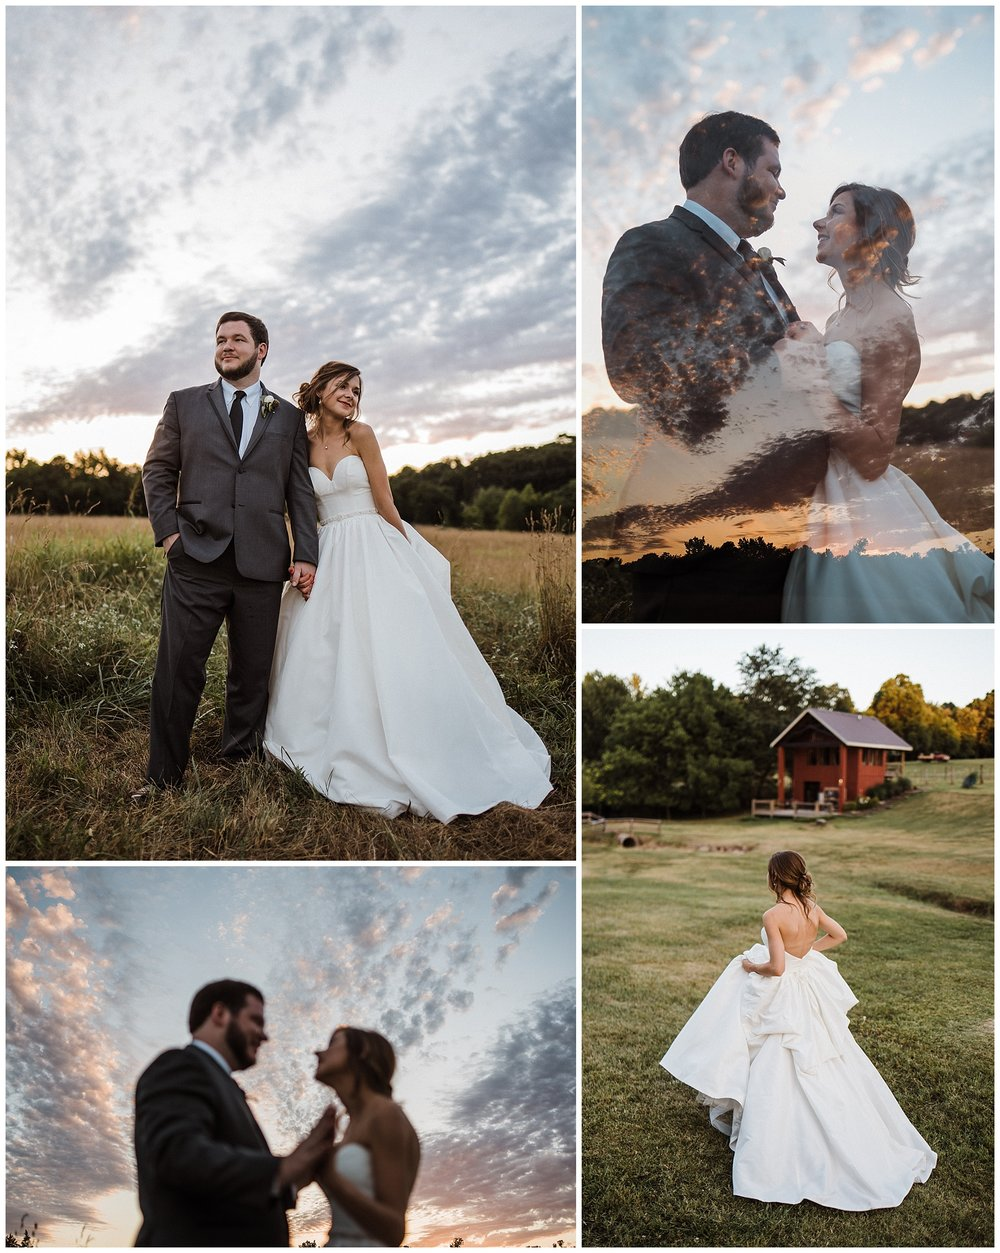 Tanner Burge Photo - Bride & Groom sunset photos with Megan & Blake